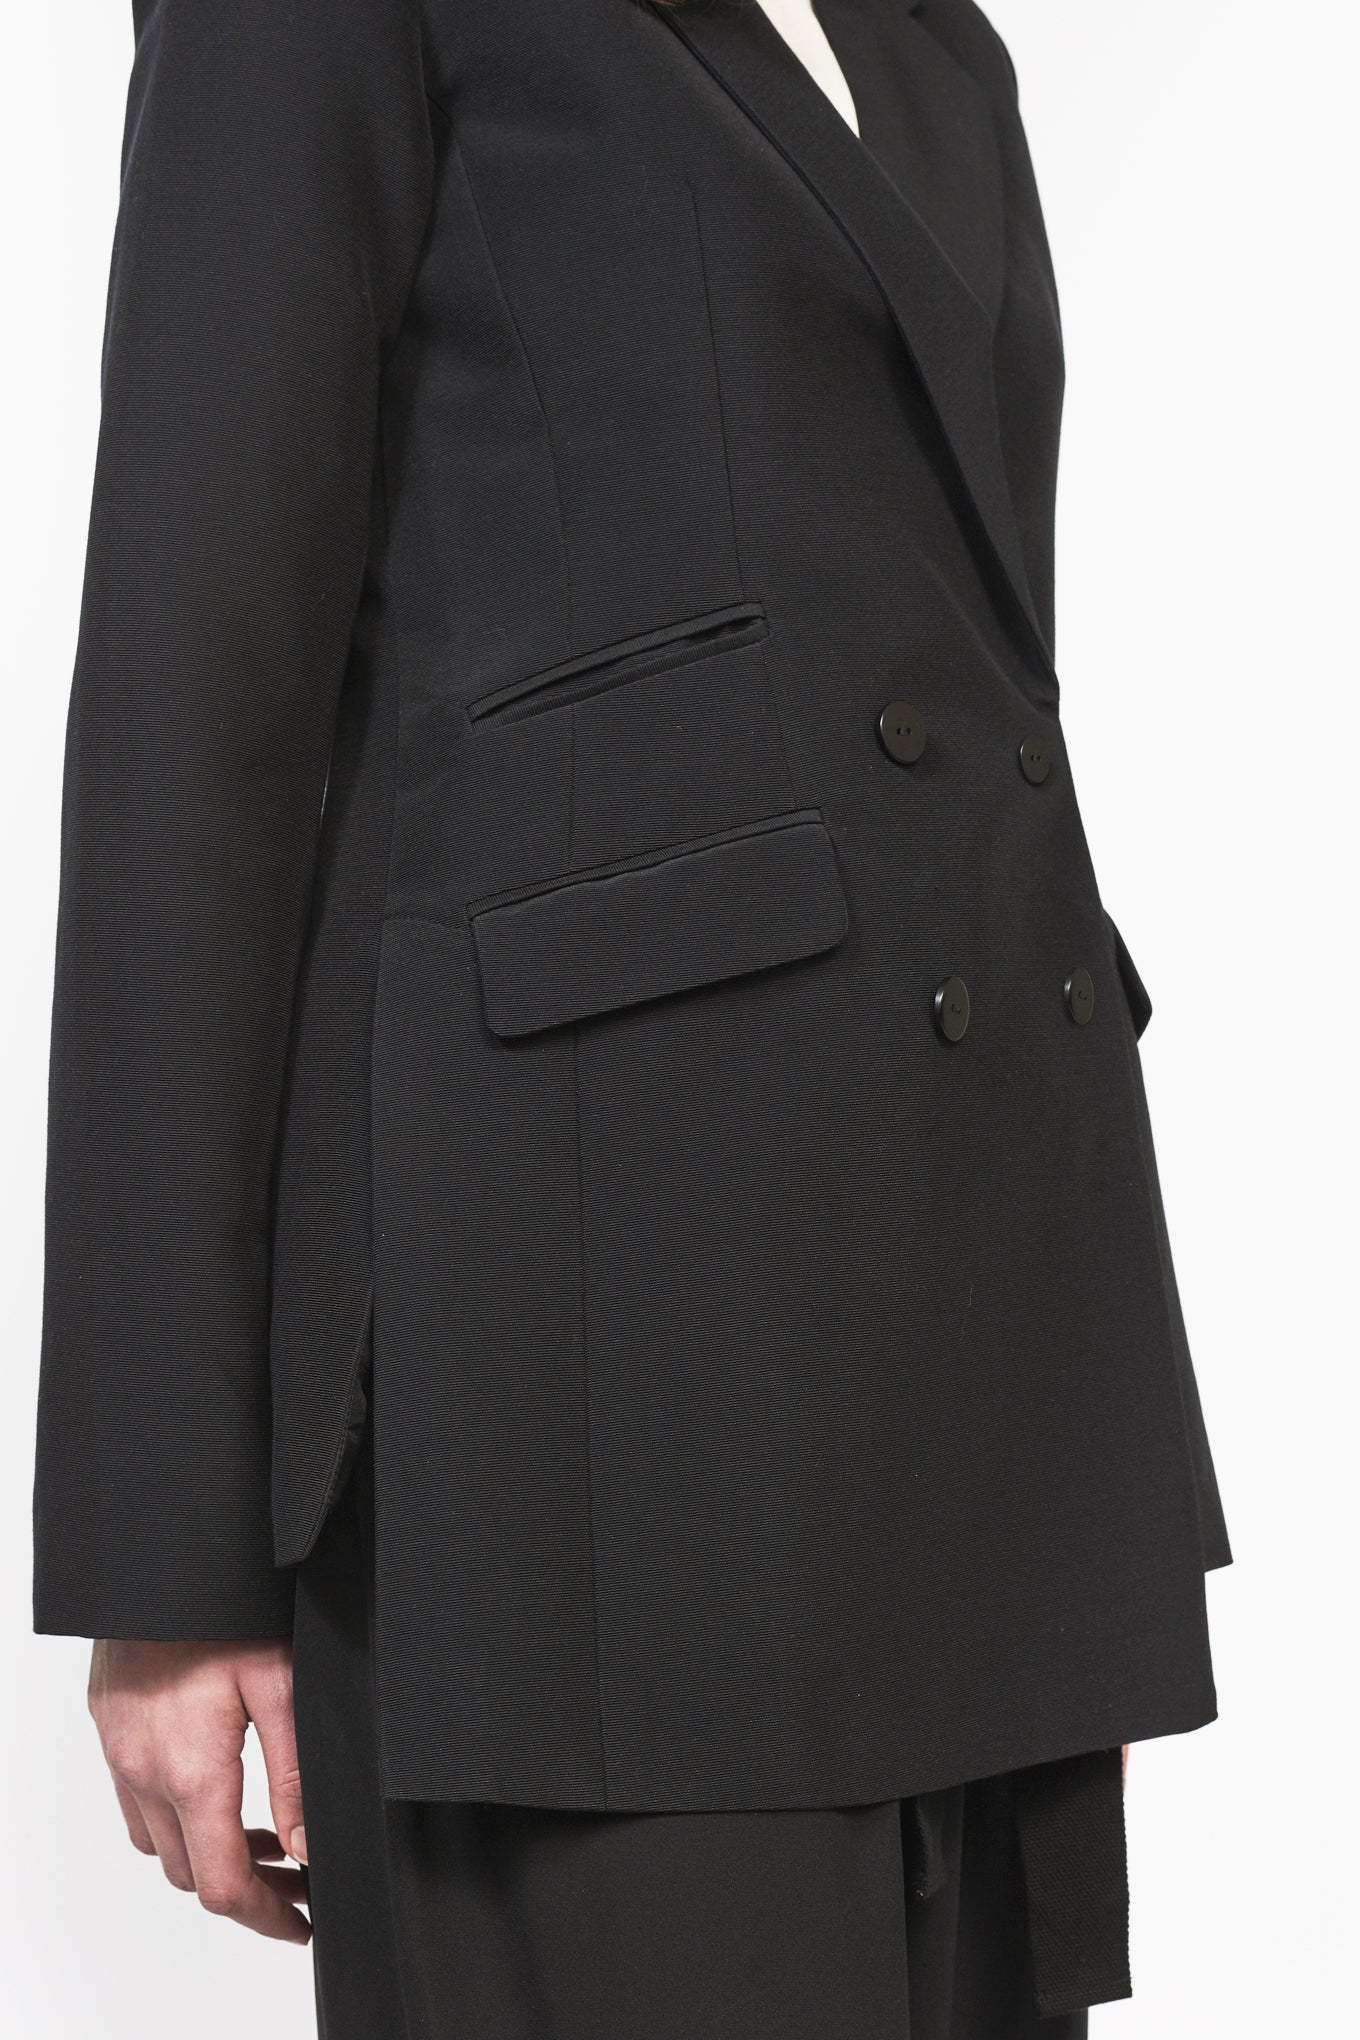 BRIGHTON BLAZER - BLACK